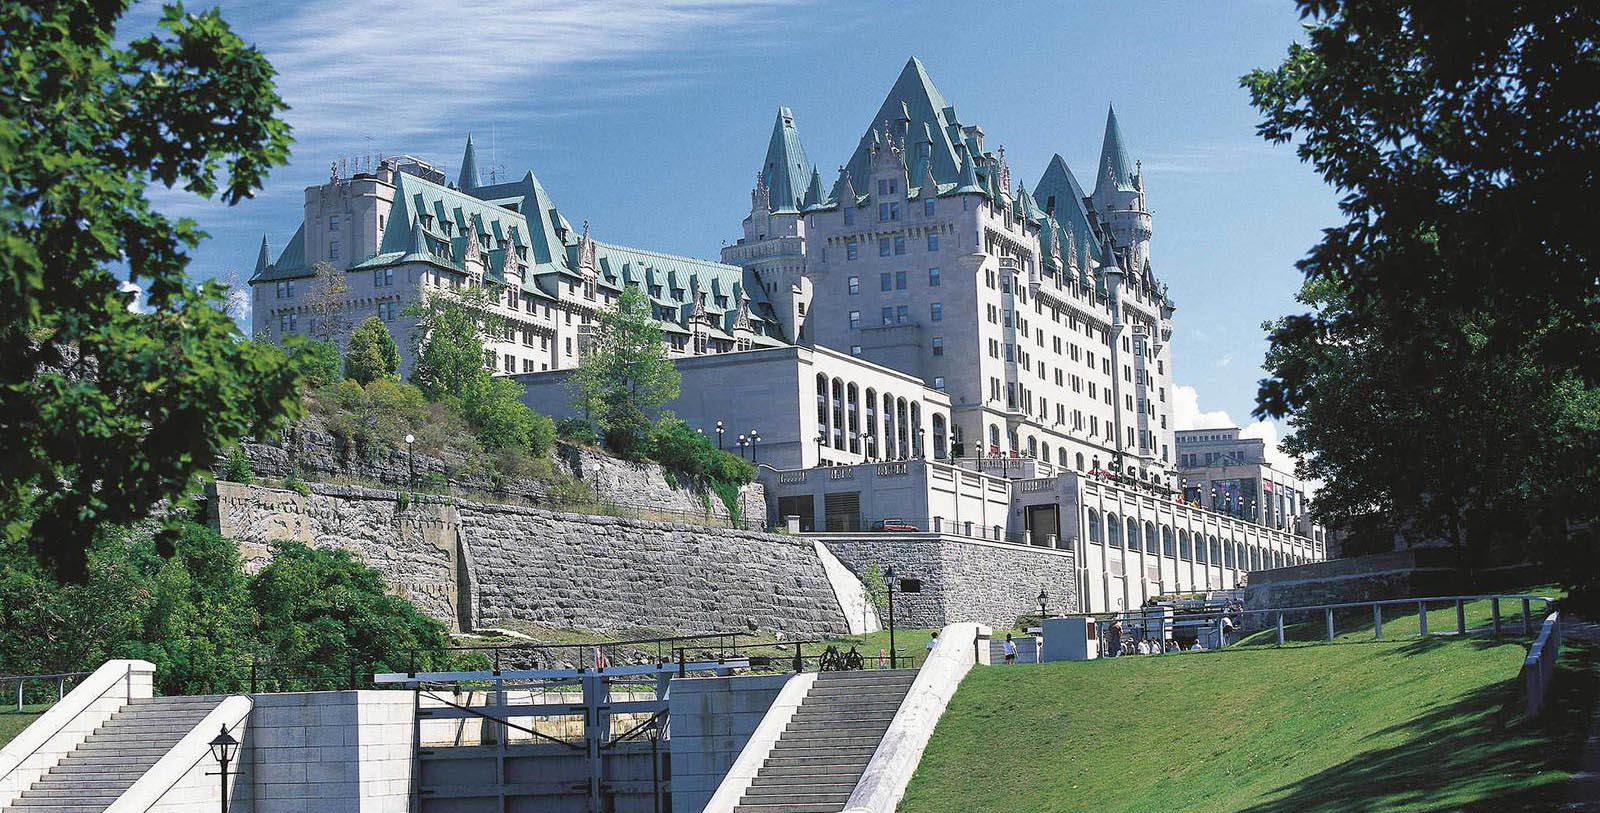 Daytime exterior of Fairmont Chateau Laurier in Ottowa, Ontario, Canada.